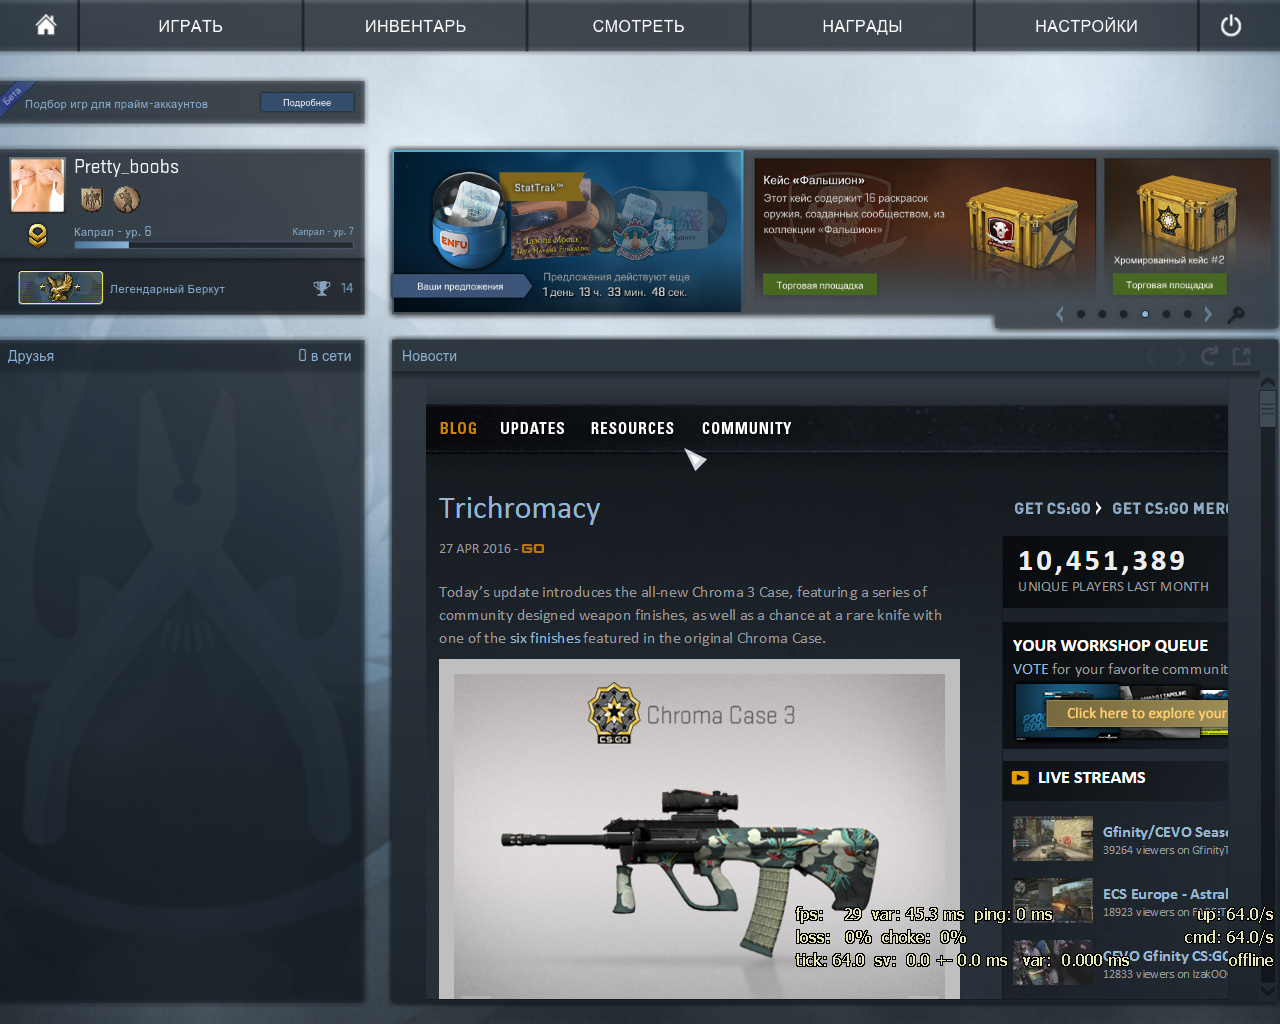 CS:GO rank Legendary Eagle personally boosted account